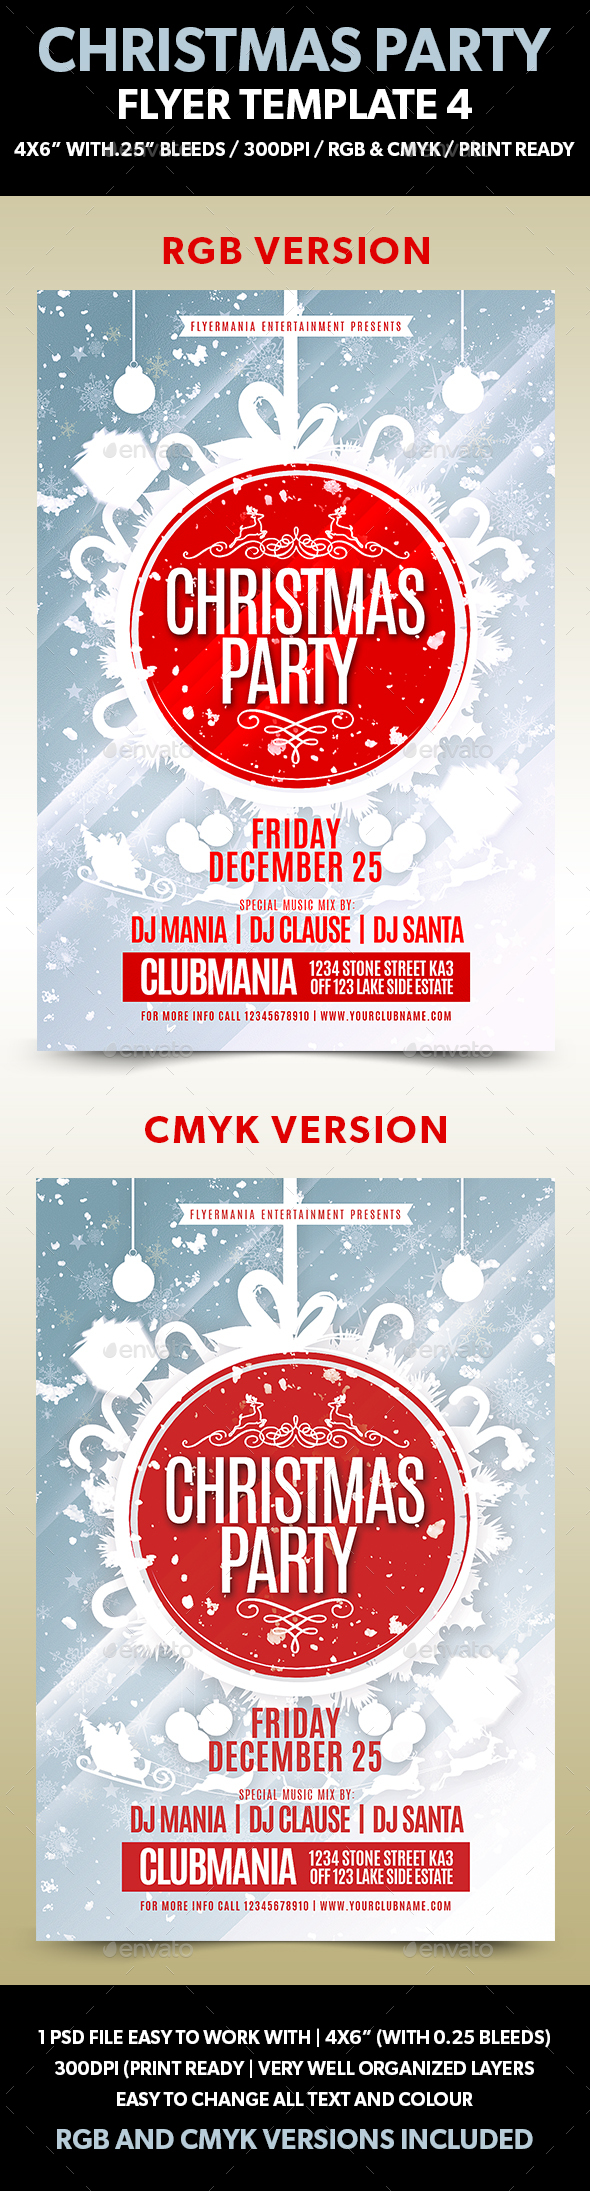 Christmas Party Flyer Template 4